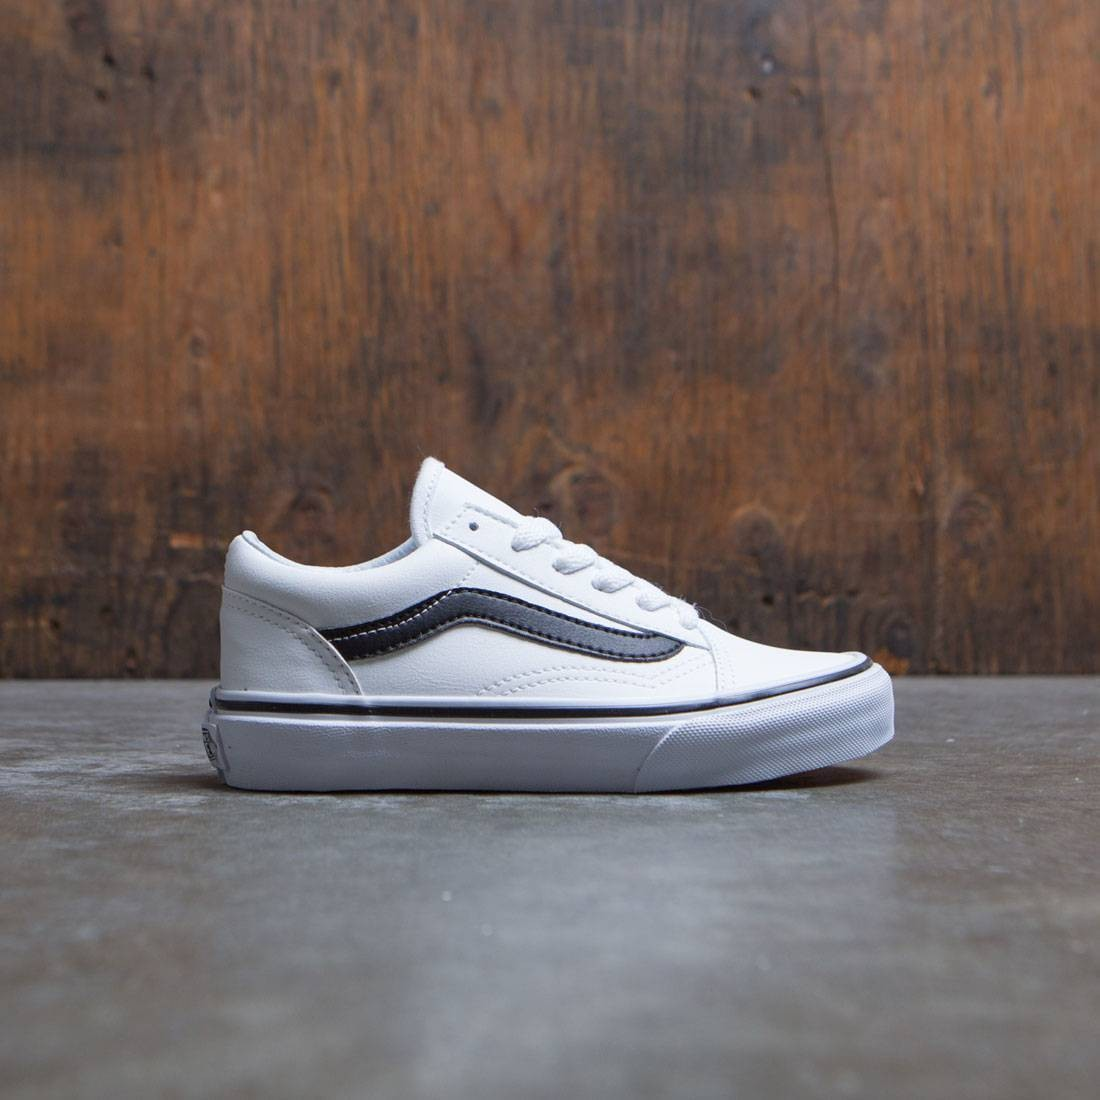 Vans Little Kids Old Skool (white / black)